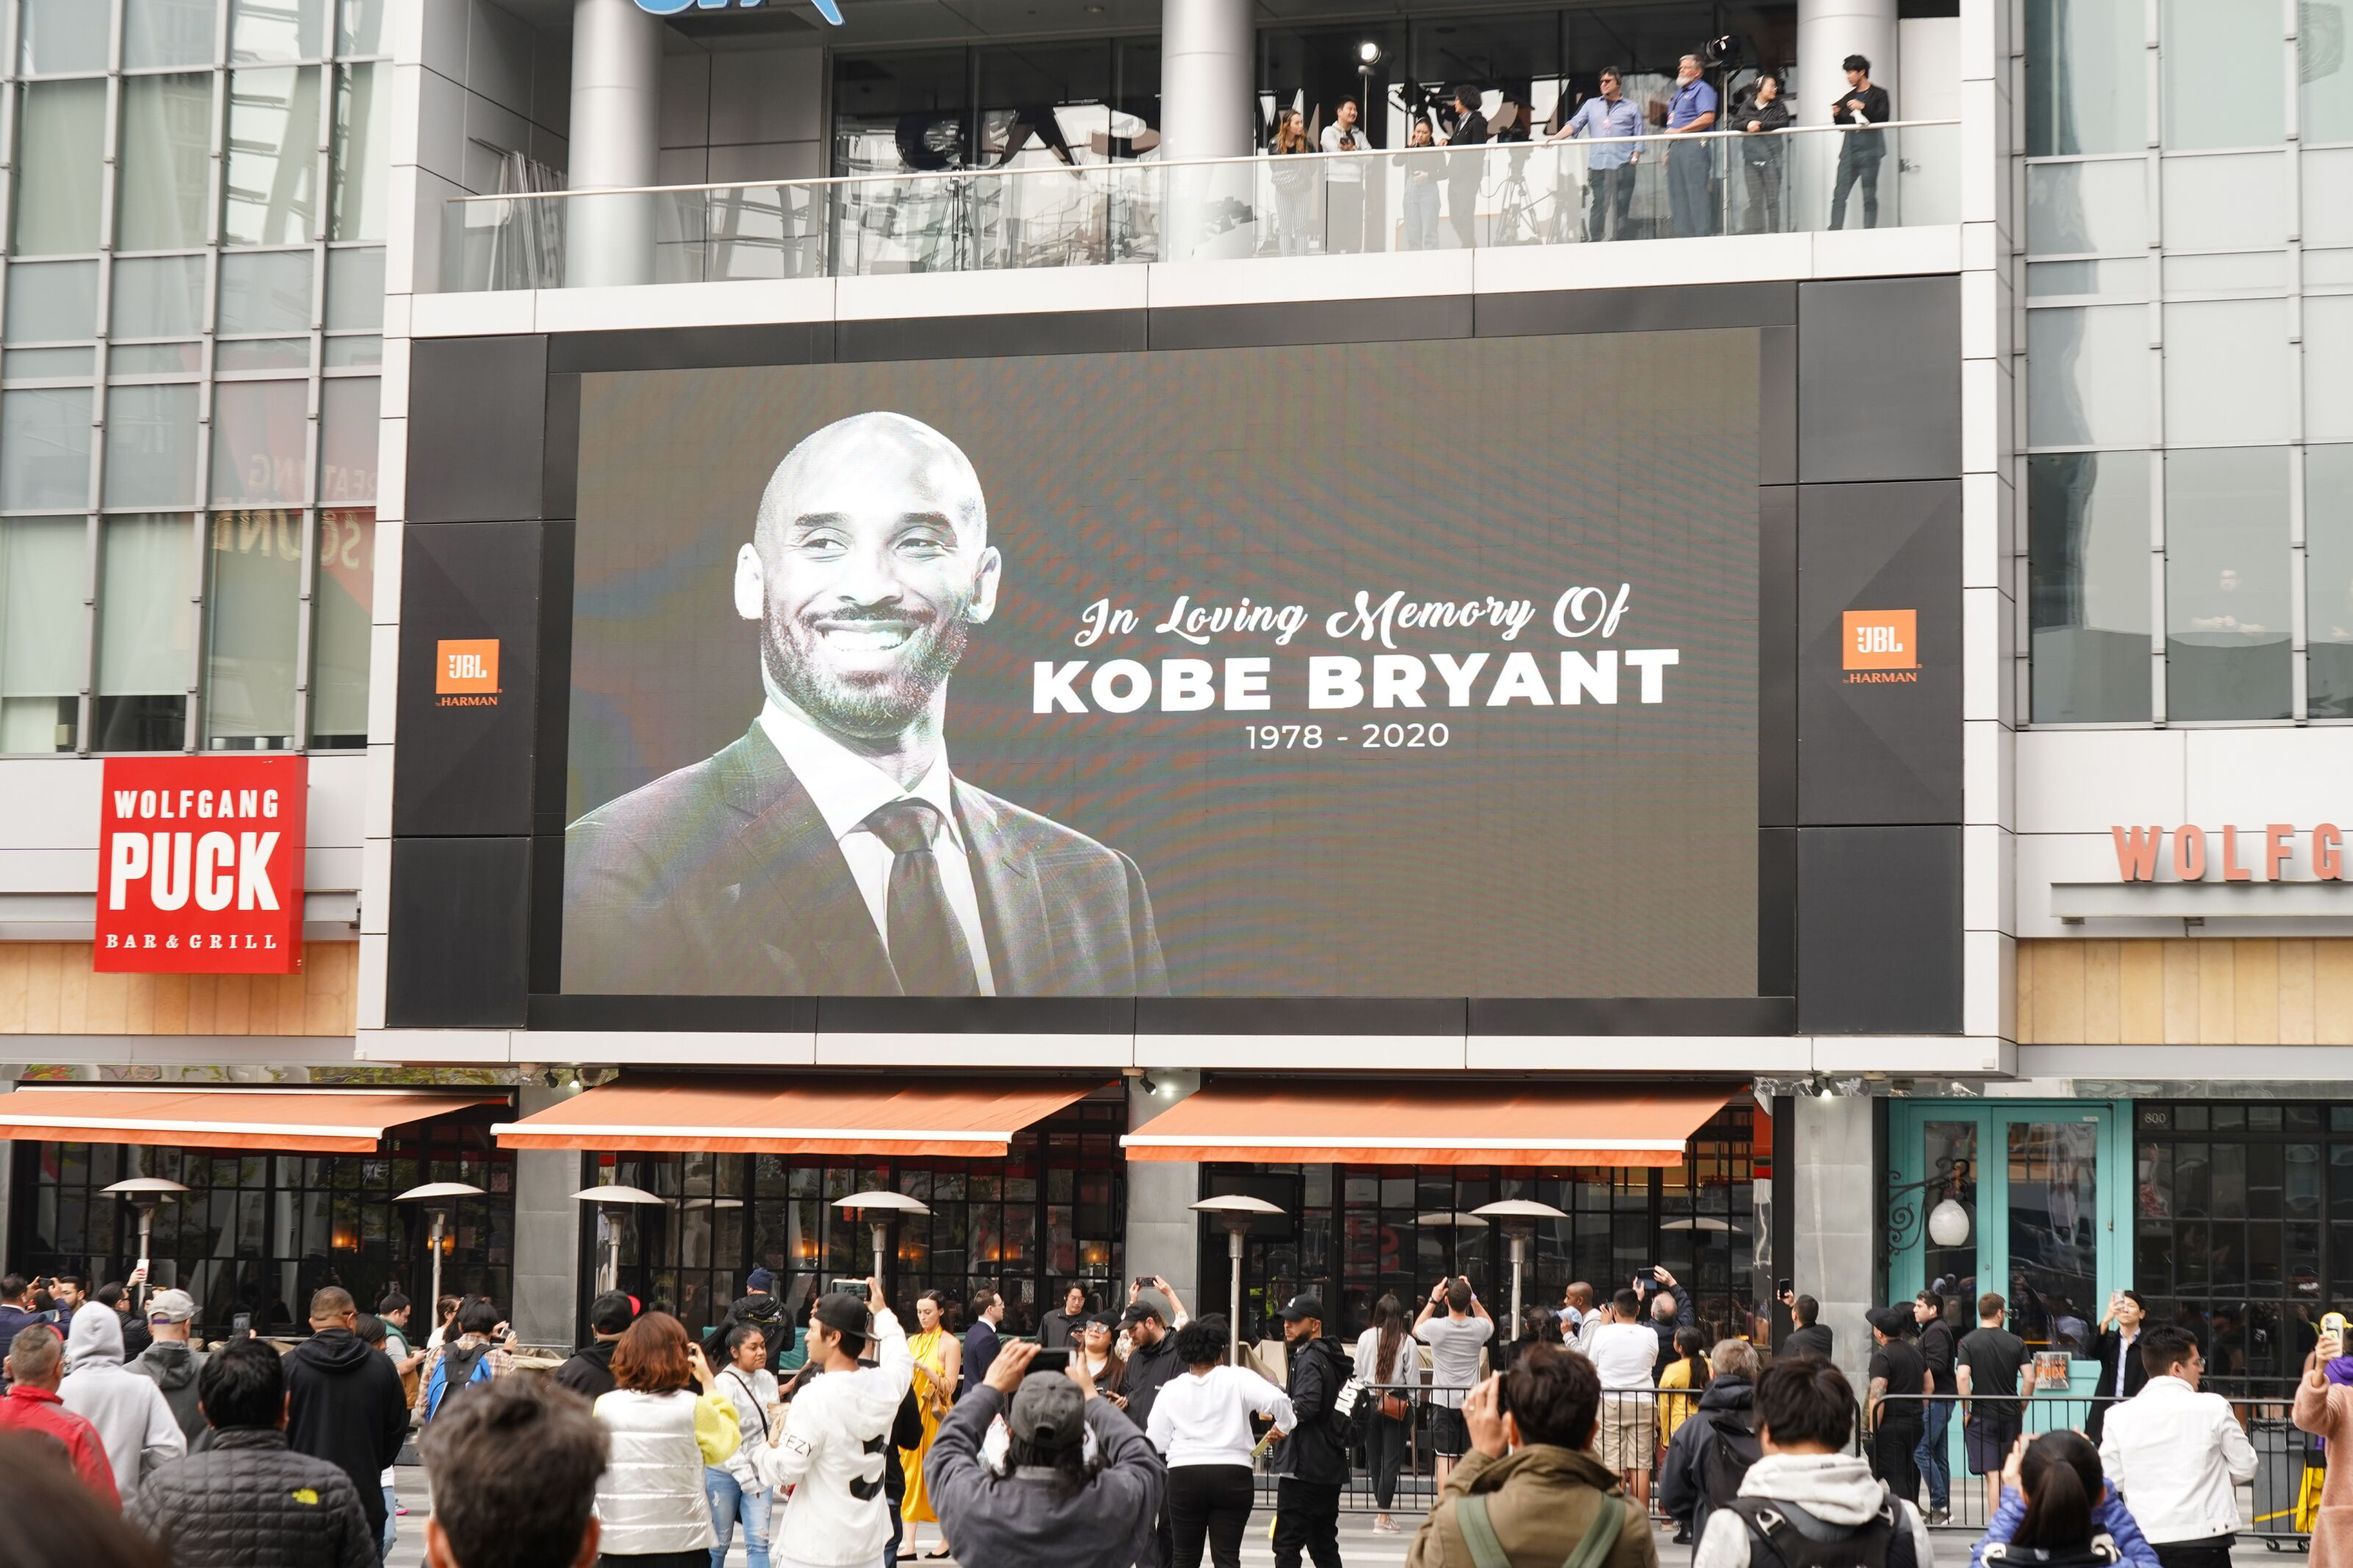 Kobe Bryant: University of Kentucky Mourns Tragic Death of Basketball Legend